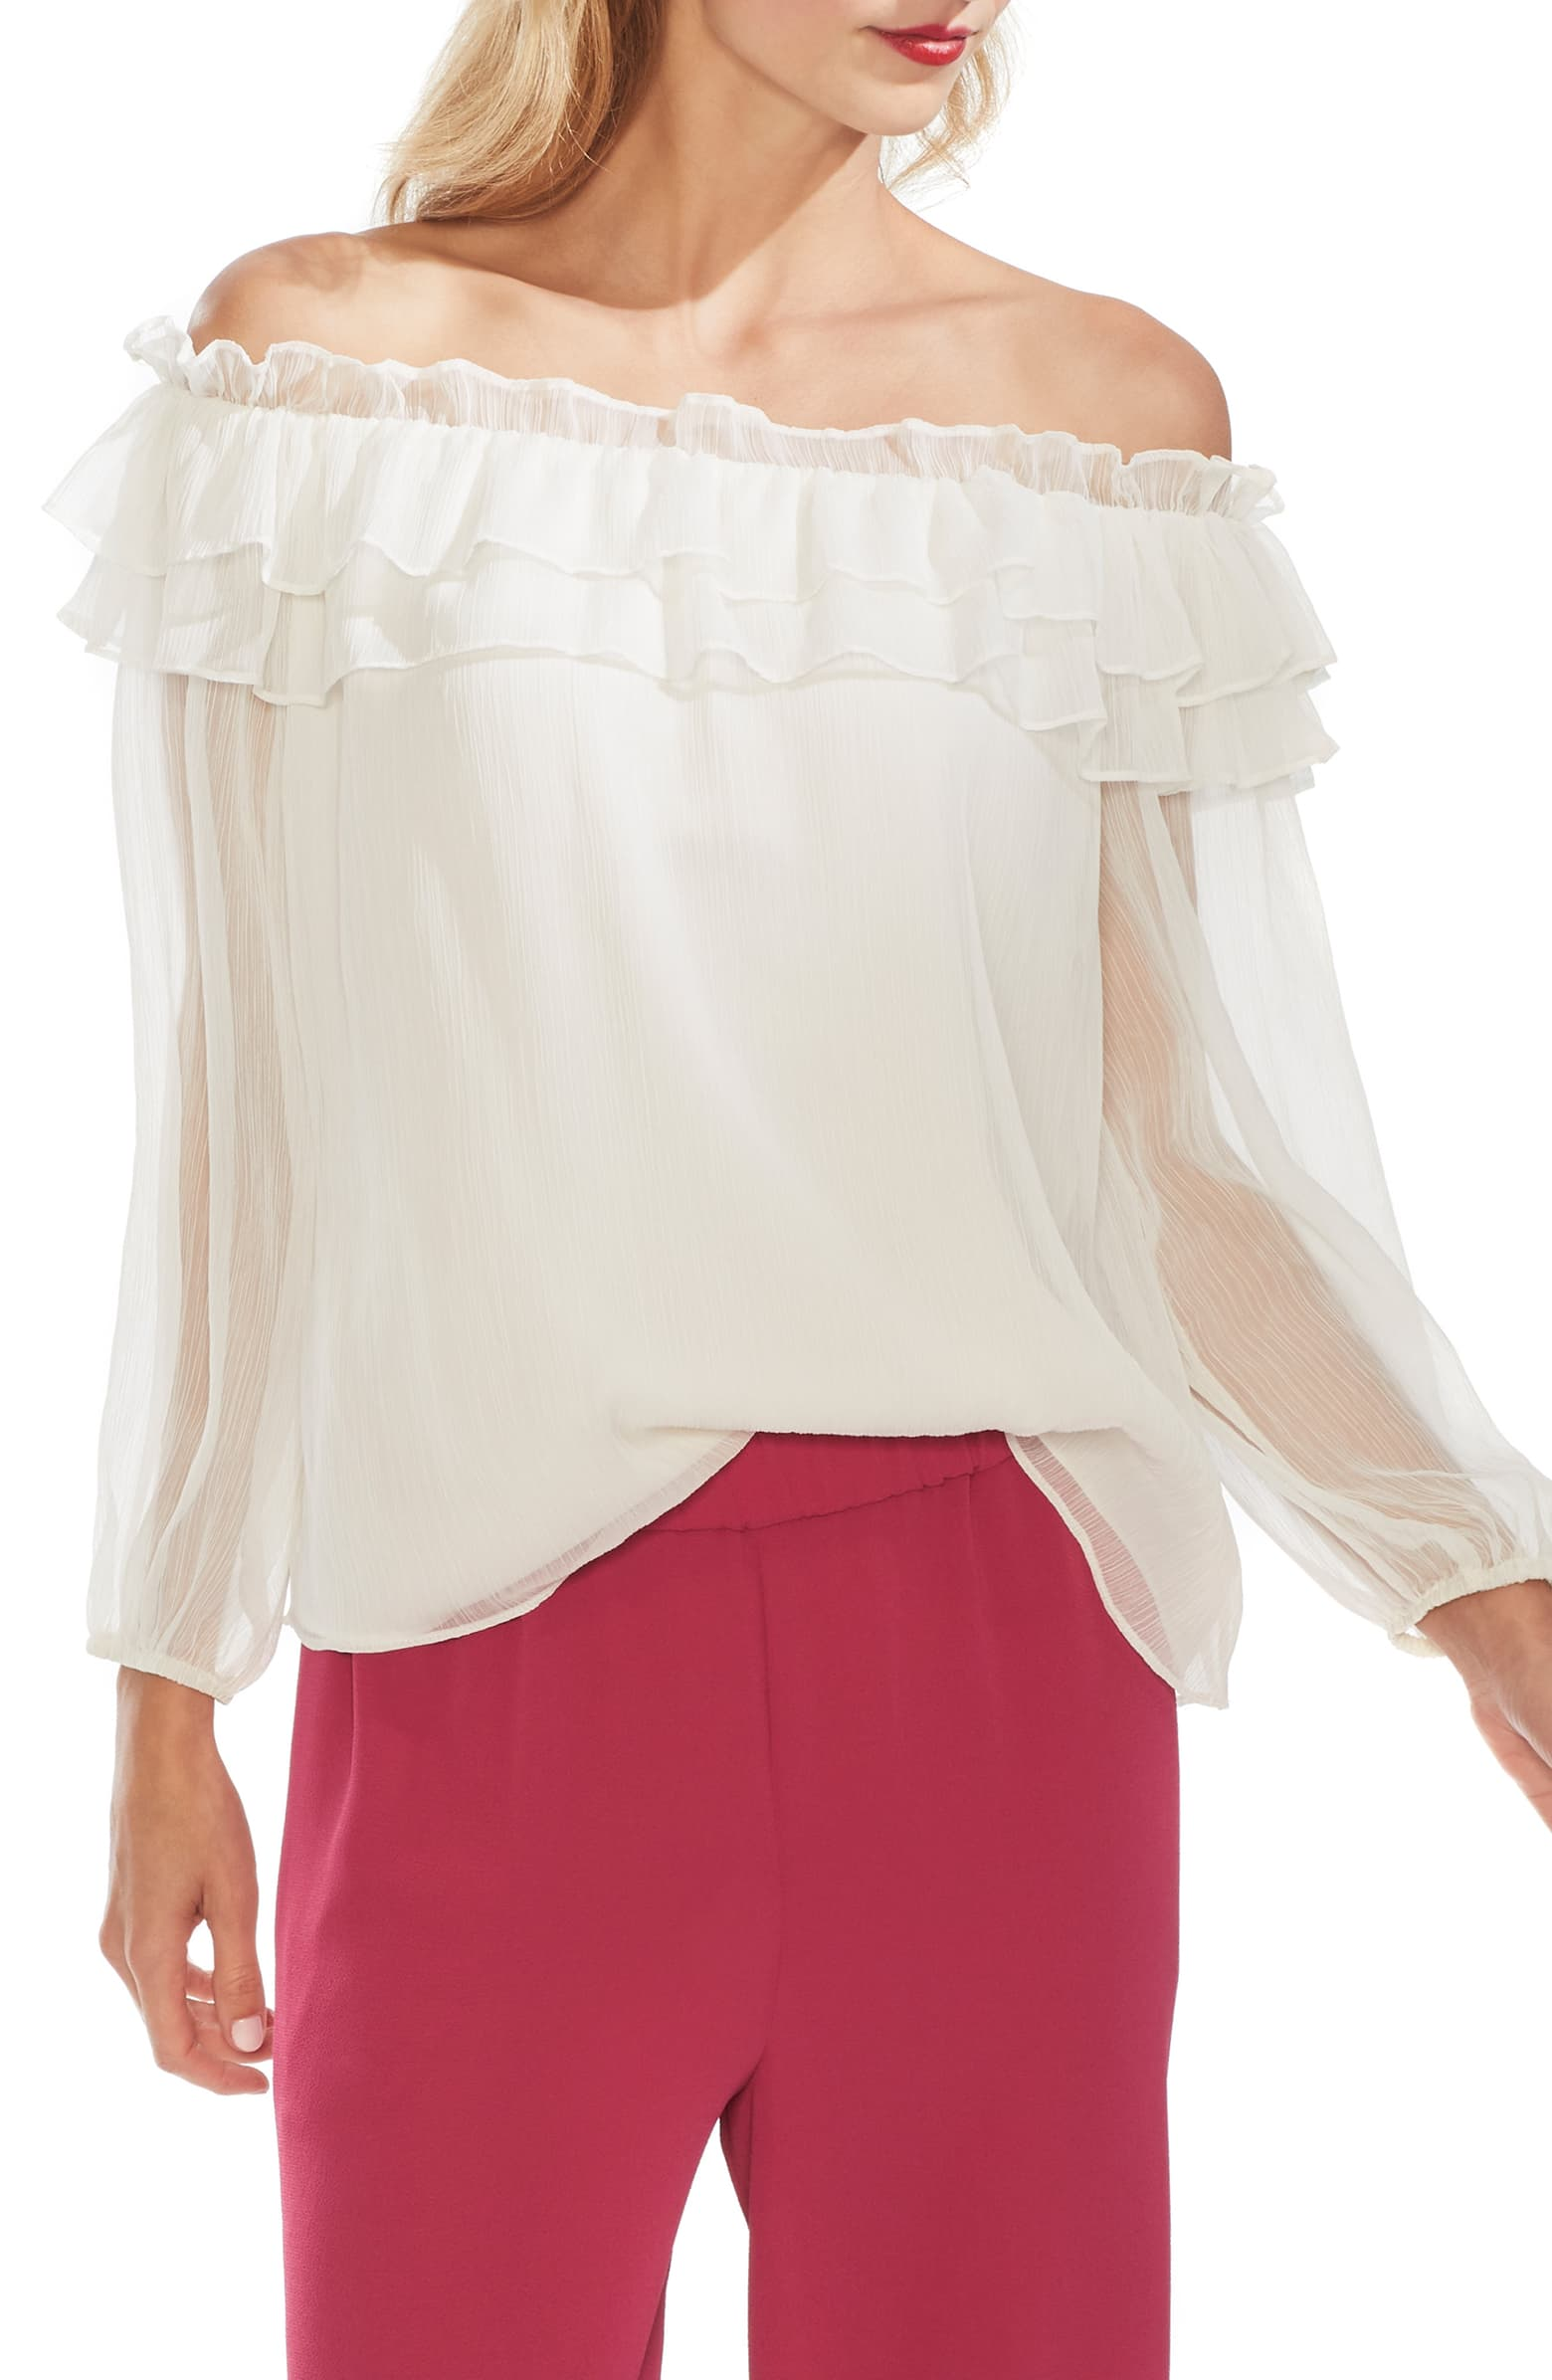 Unfortunately, the shirt I wore is out of stock, but this is SUPER similar! Only main difference is the sleeve length!